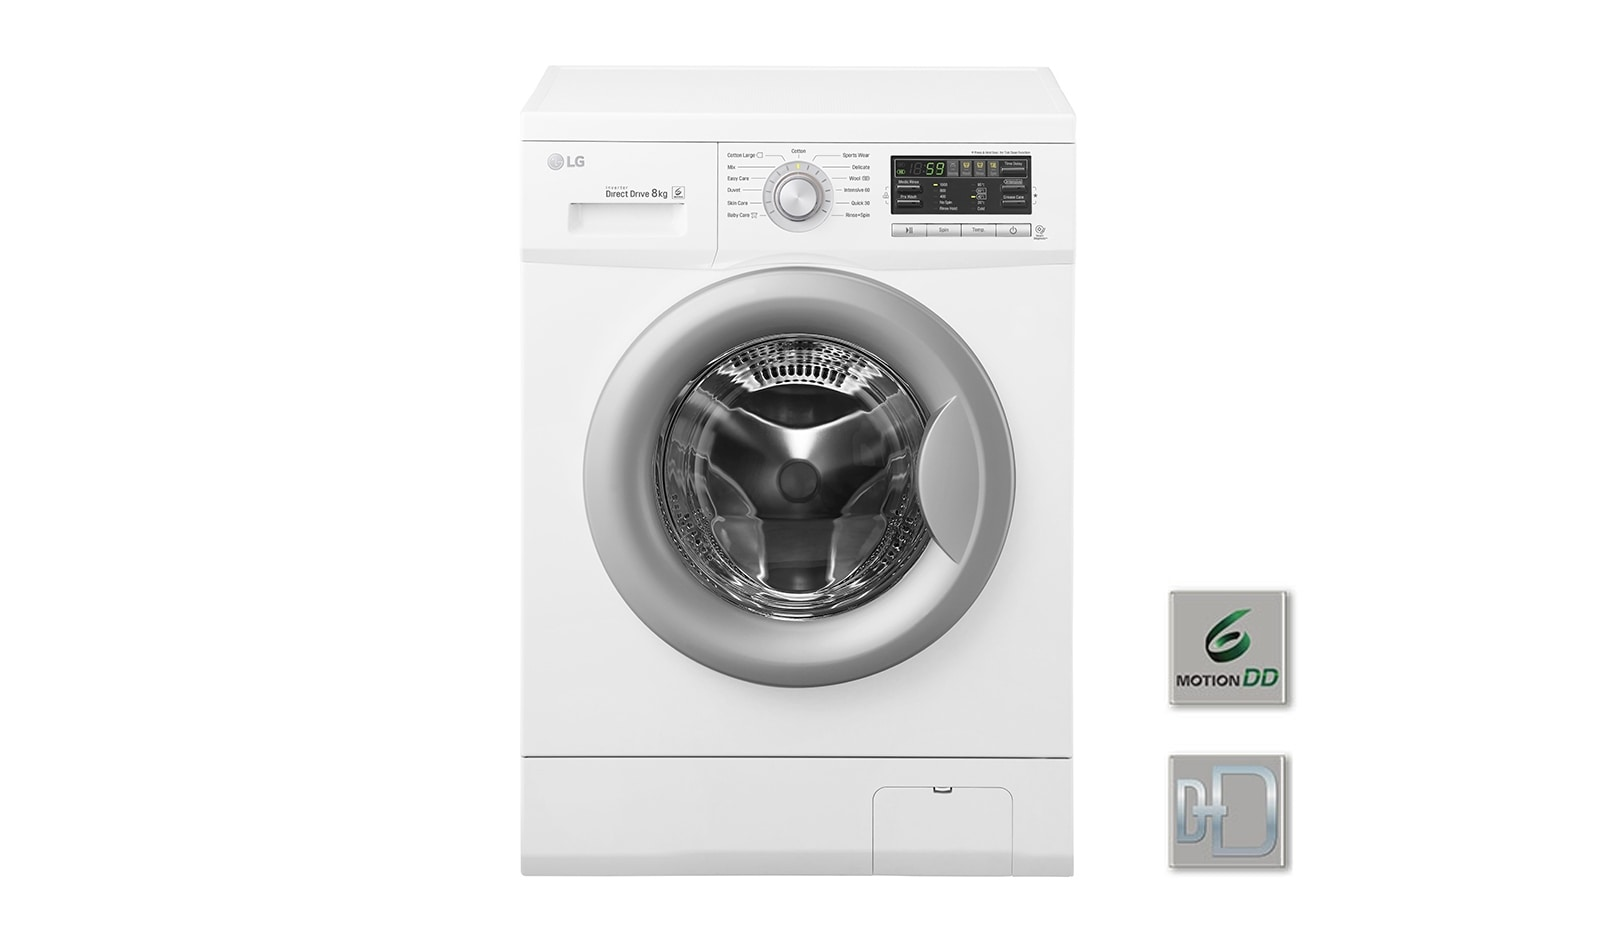 lg lave linge 6 motion direct drive f82731wh d couvrez le lave linge lg f82731wh. Black Bedroom Furniture Sets. Home Design Ideas